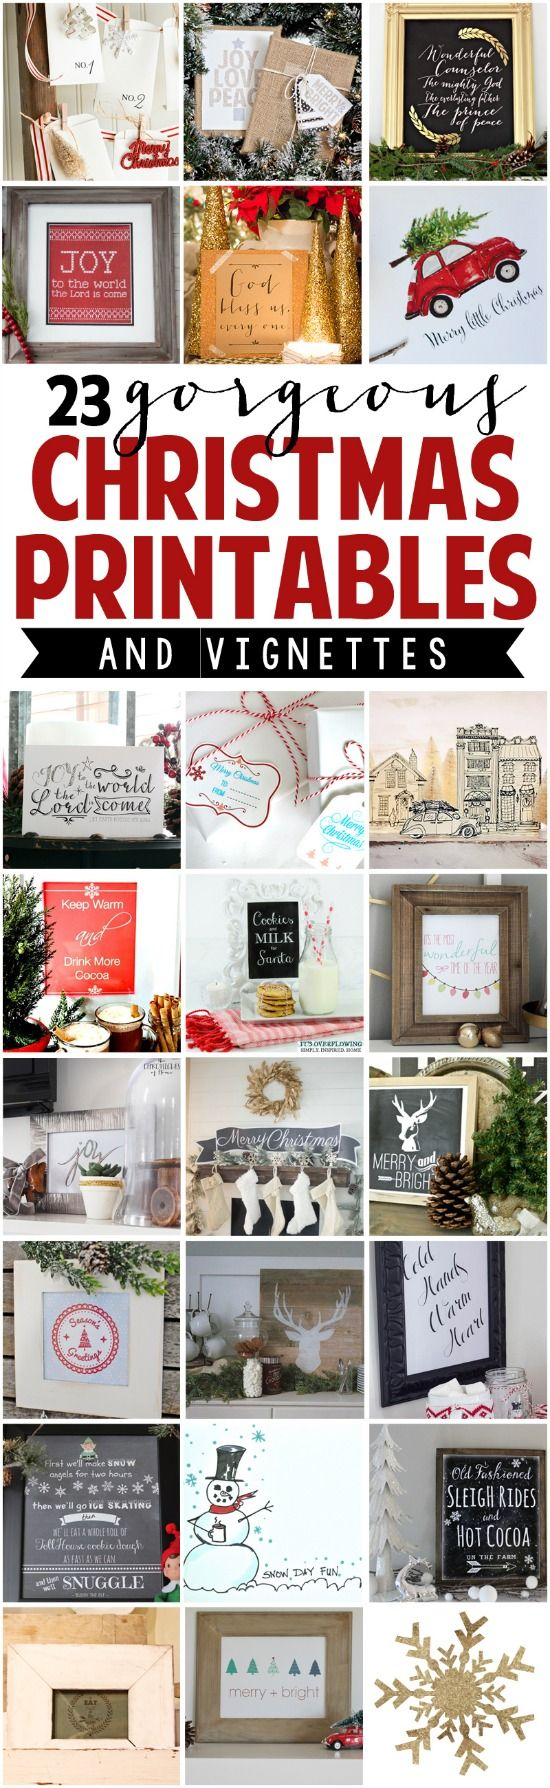 with eclecticallyvintage com Pop from to flights cheap instant    one tampa Display gift  Ideas  frame Christmas a Gorgeous puerto Printables FREE hostess into for rico